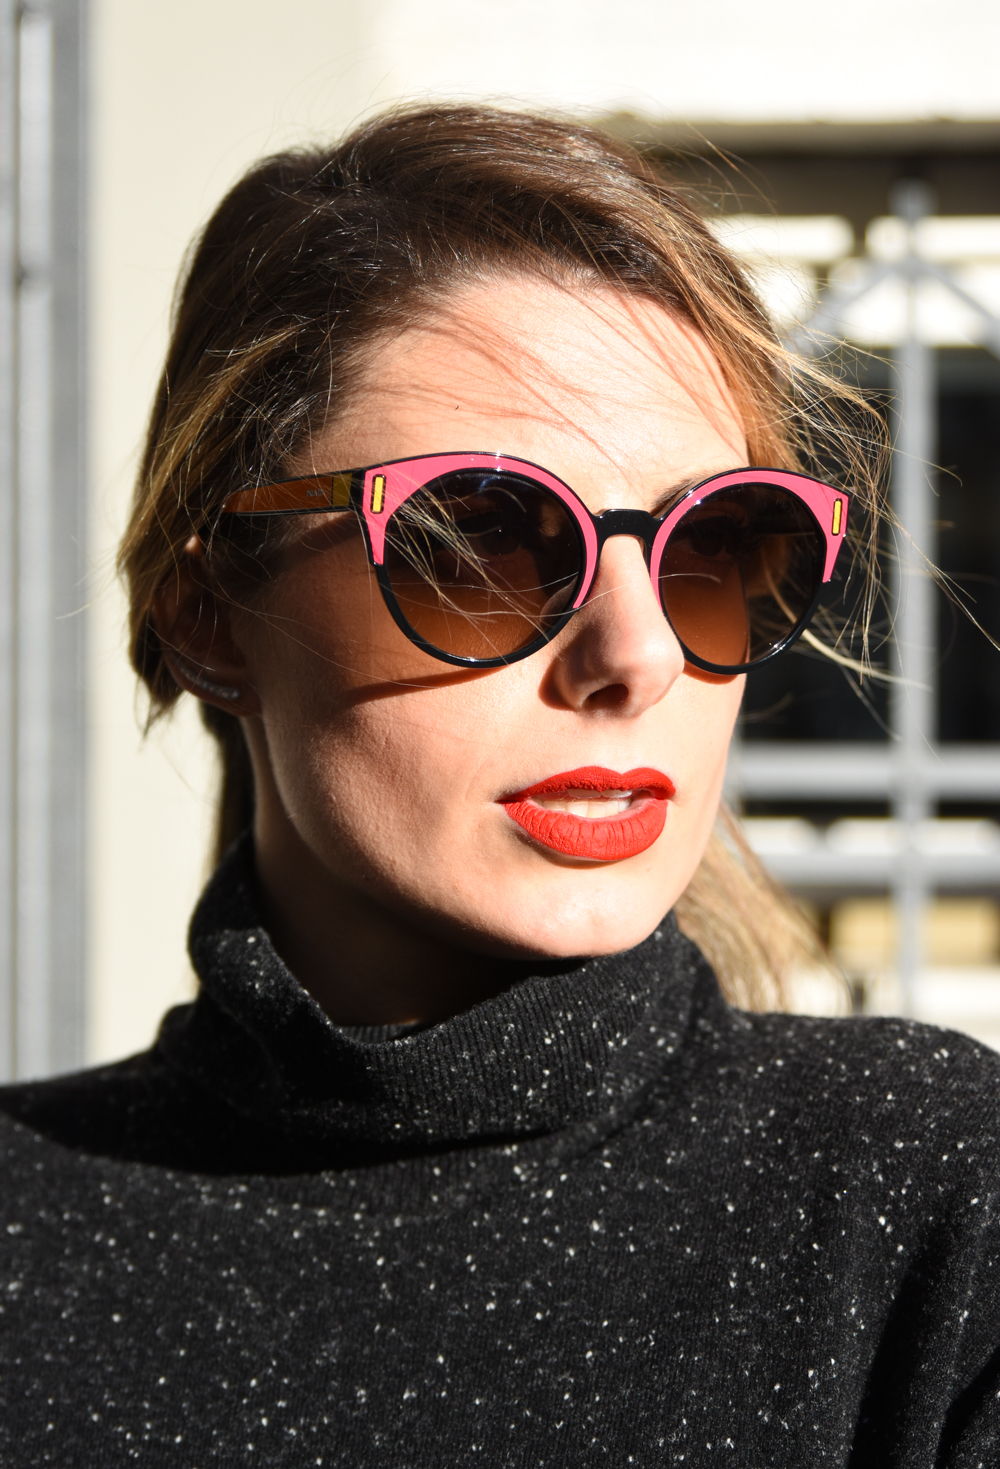 prada-sunglasses-fall-winter-2017-2018-behidn-my-glasses-eyewear-blog-giulia-de-martin-shades-sunnies-colors-pink-red-lips